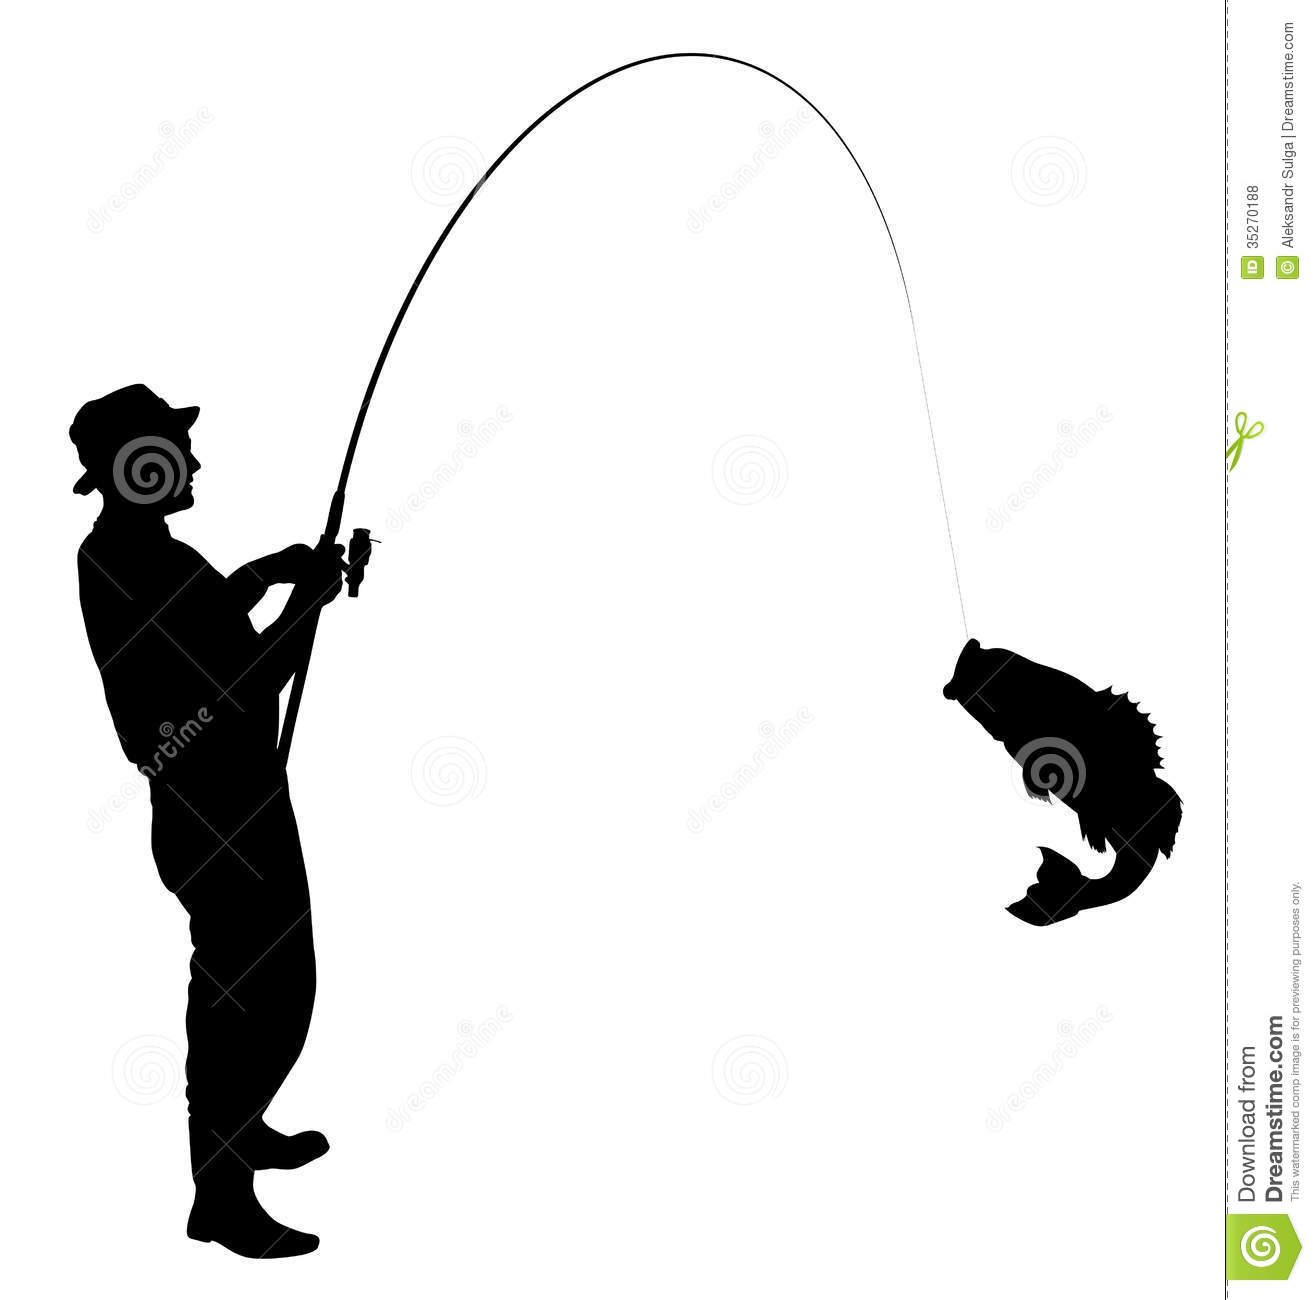 fishing silhouette royalty free stock photos image 35270188